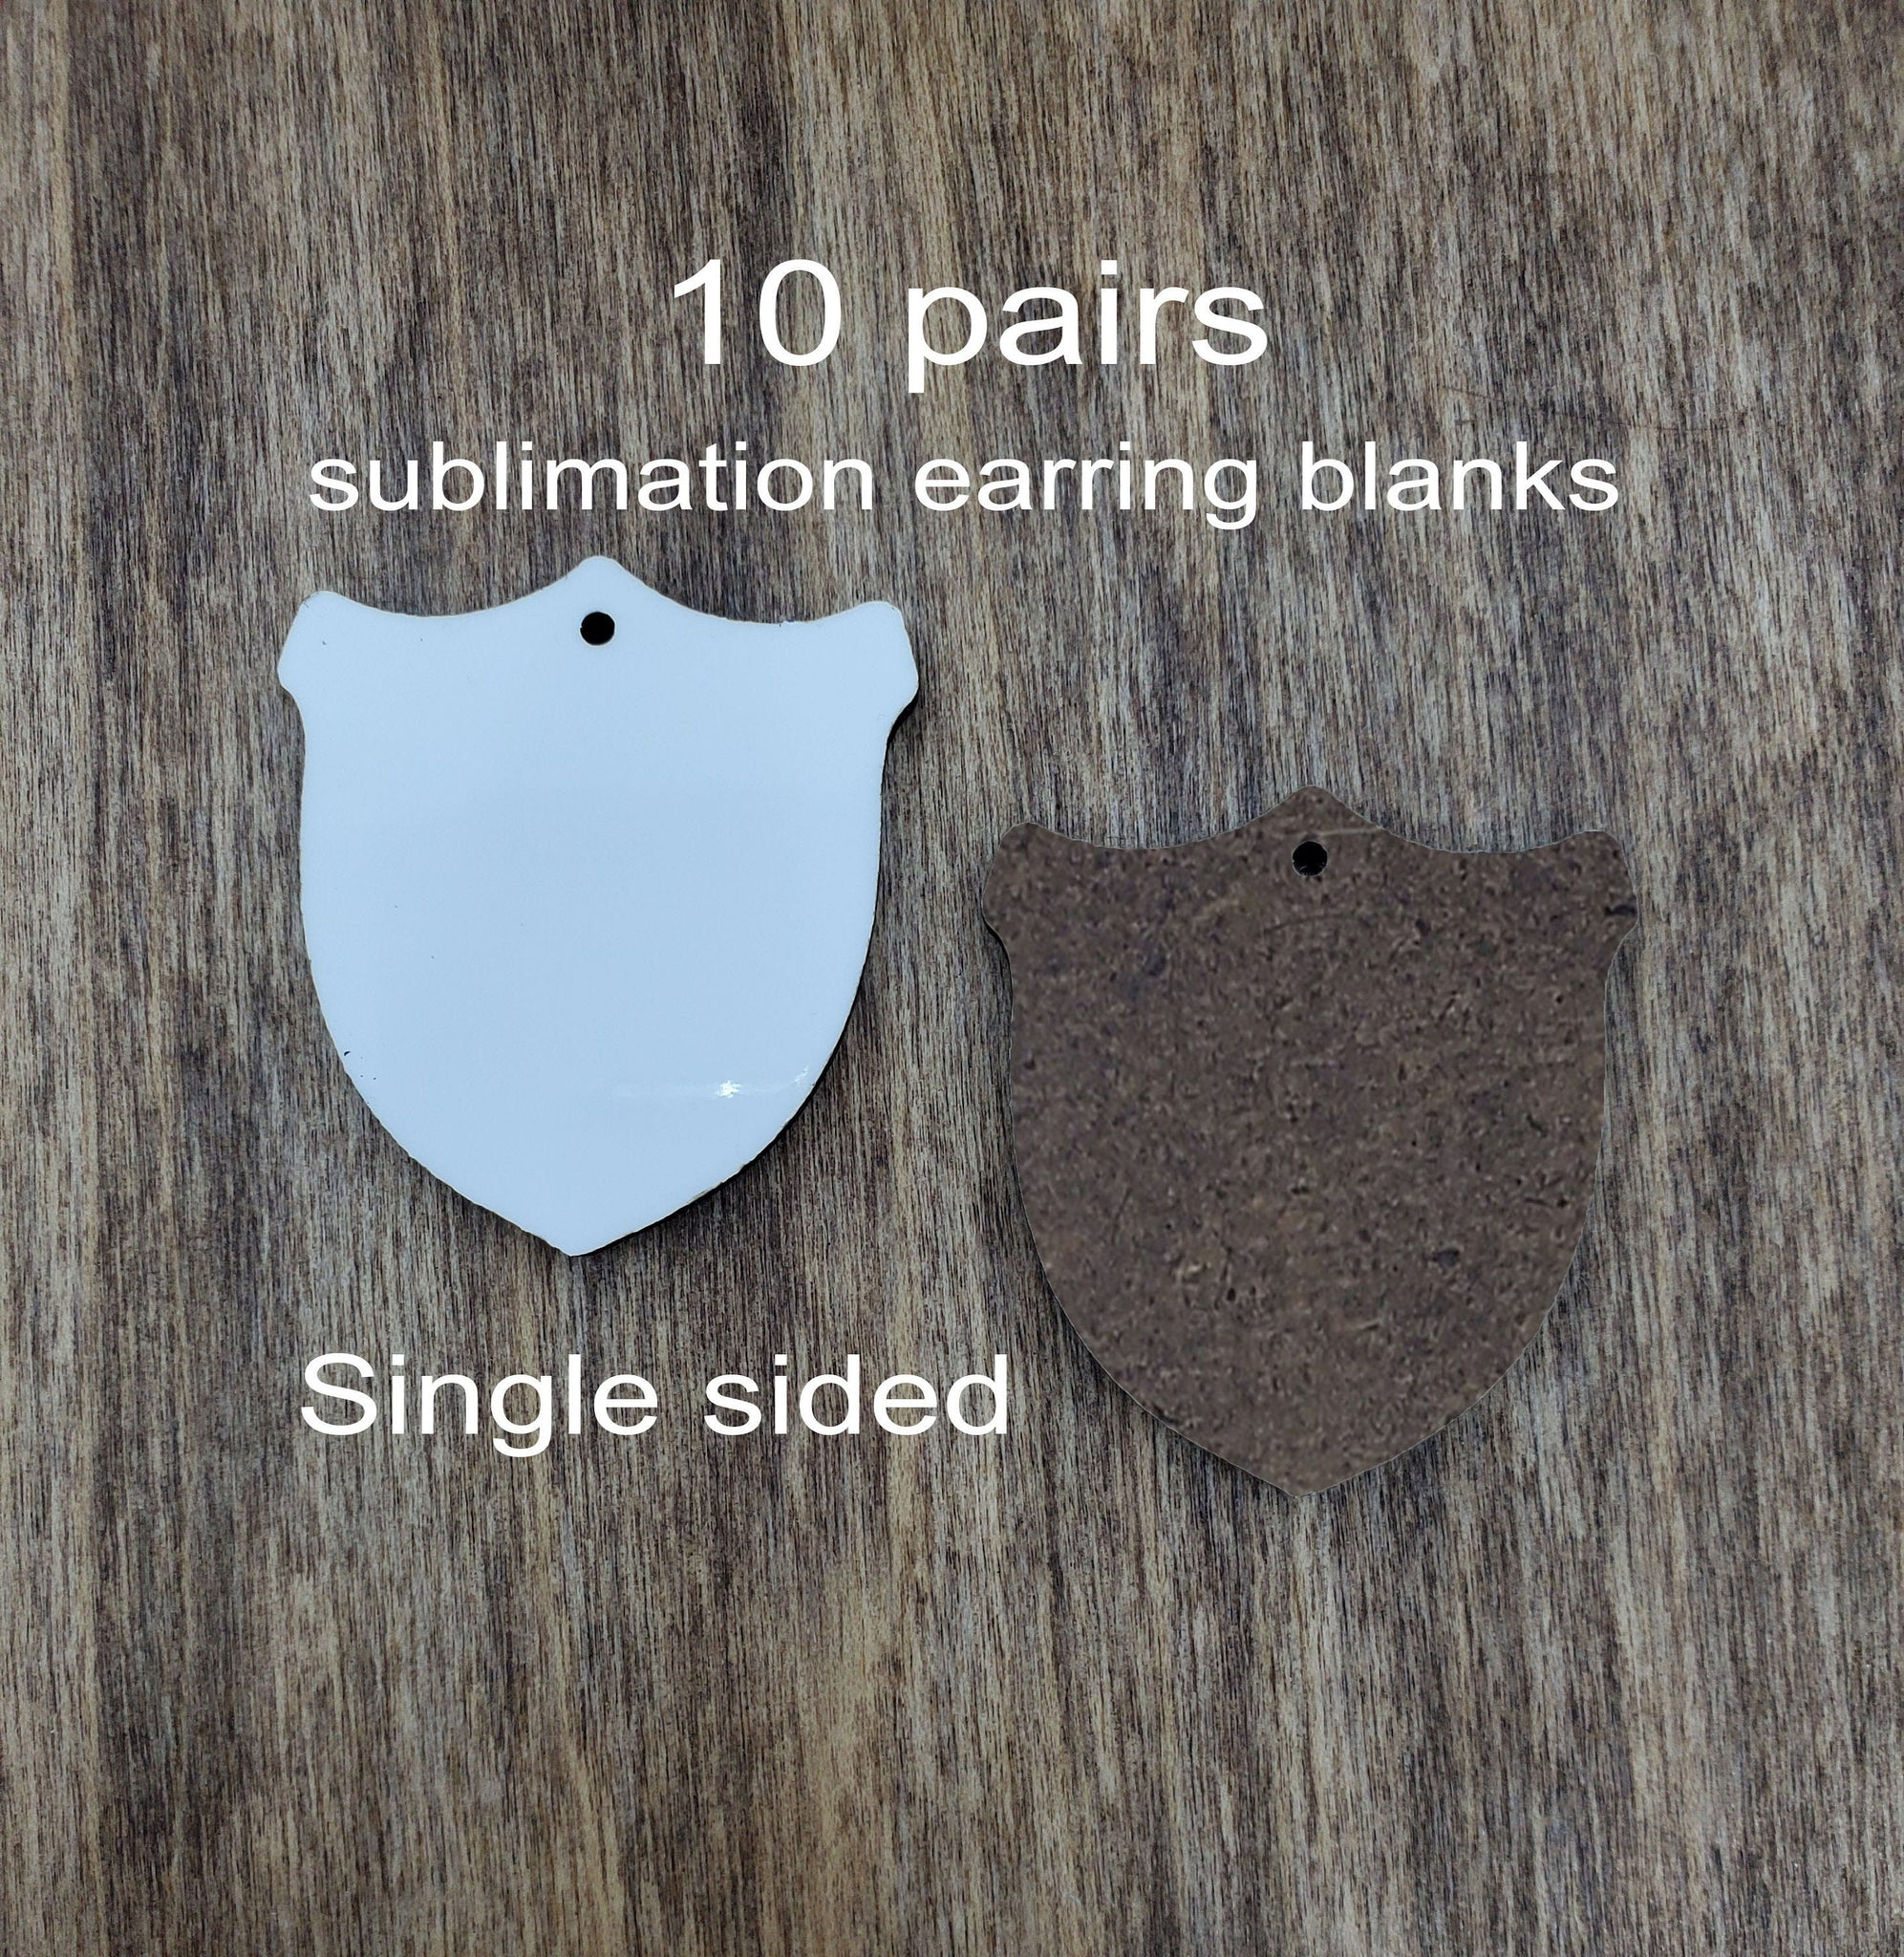 "Sublimation hardboard blanks, 1.25""  badge shaped sublimation blanks, SINGLE sided badge earring blanks for sublimation"